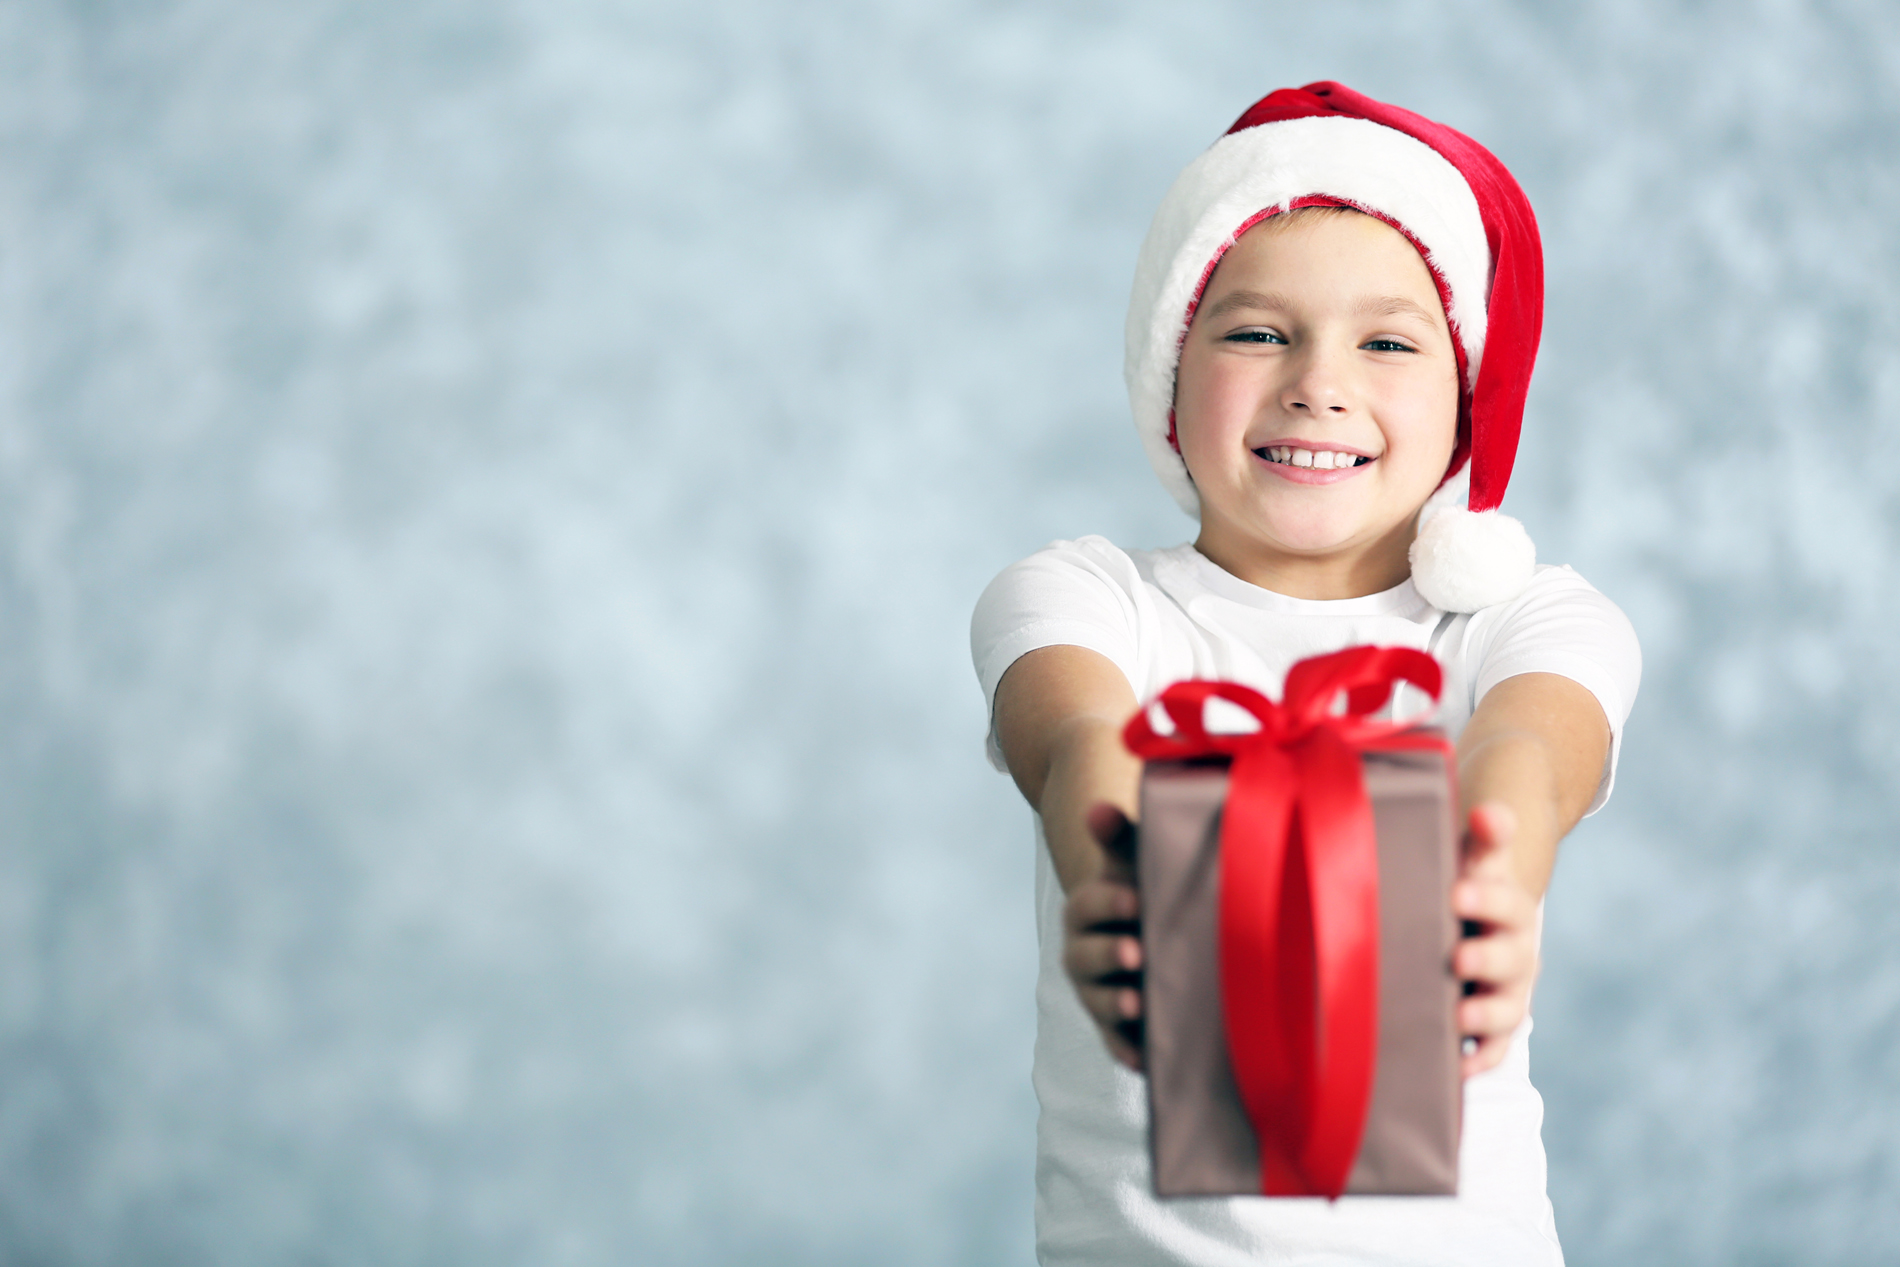 Gifts Christmas dress up boy 52733